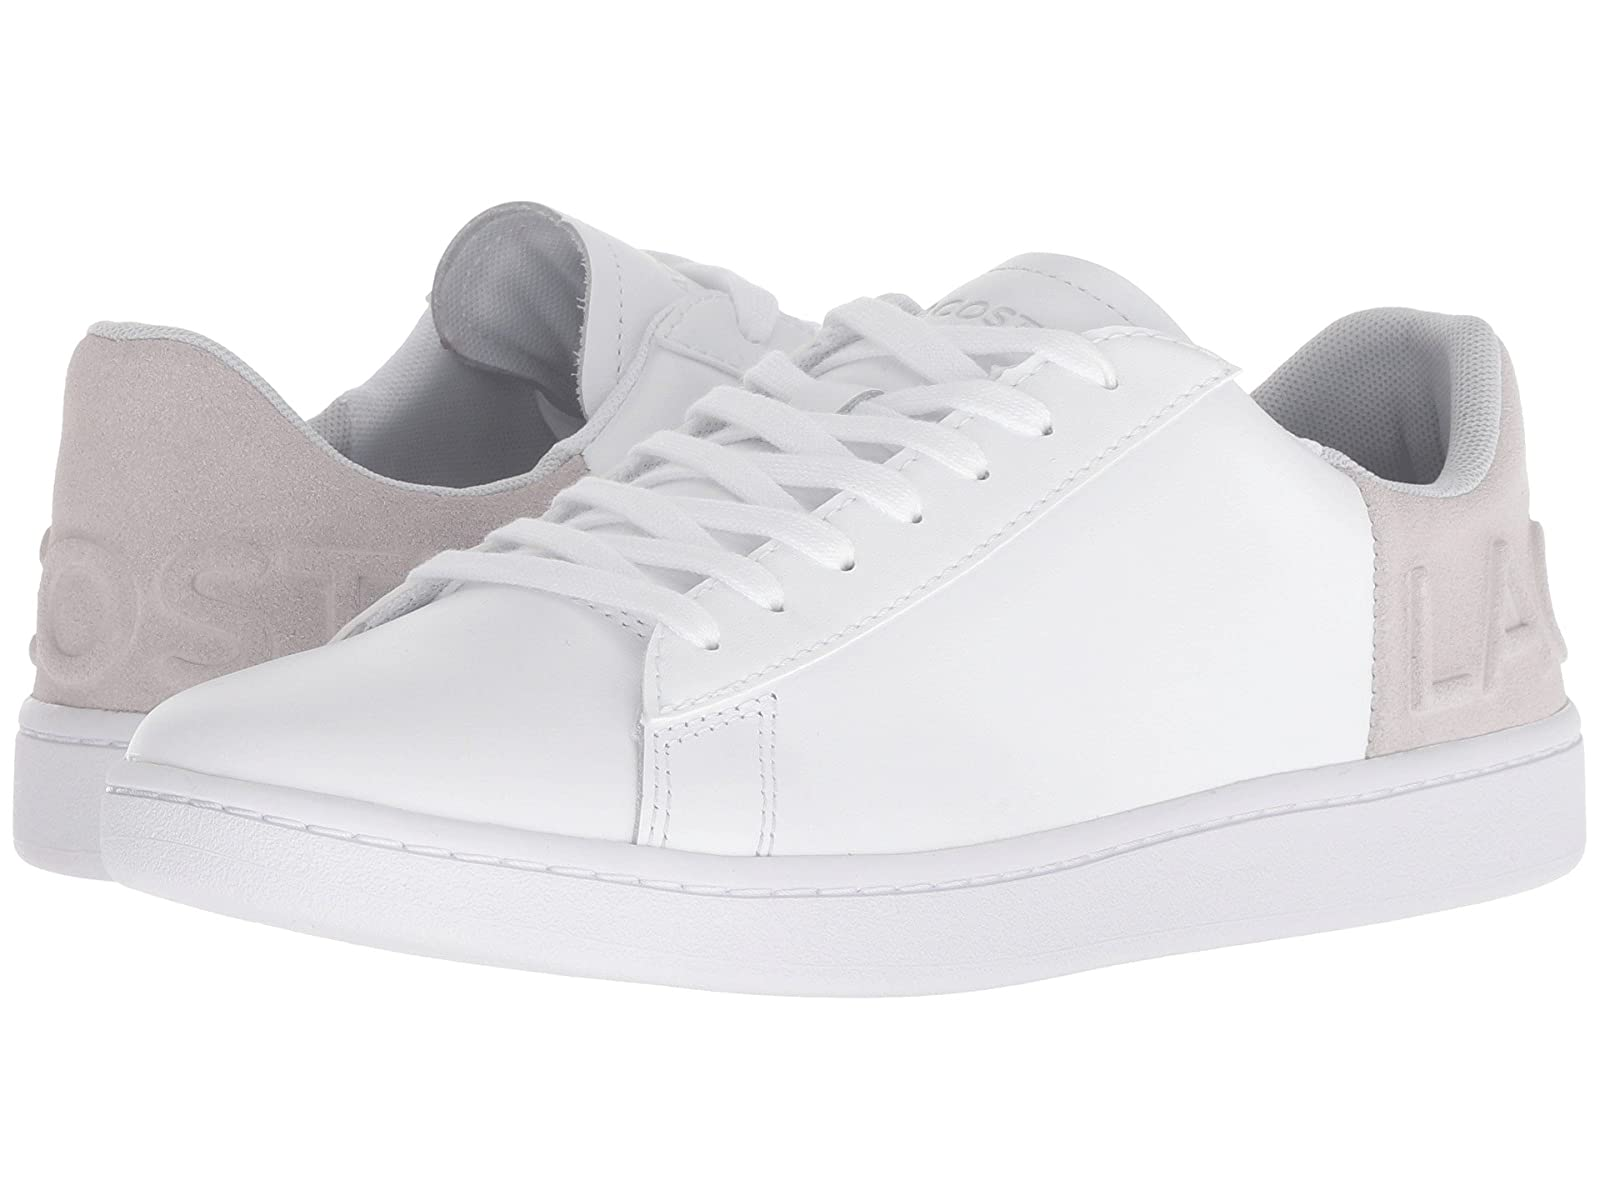 Lacoste Carnaby Evo 318 3Atmospheric grades have affordable shoes